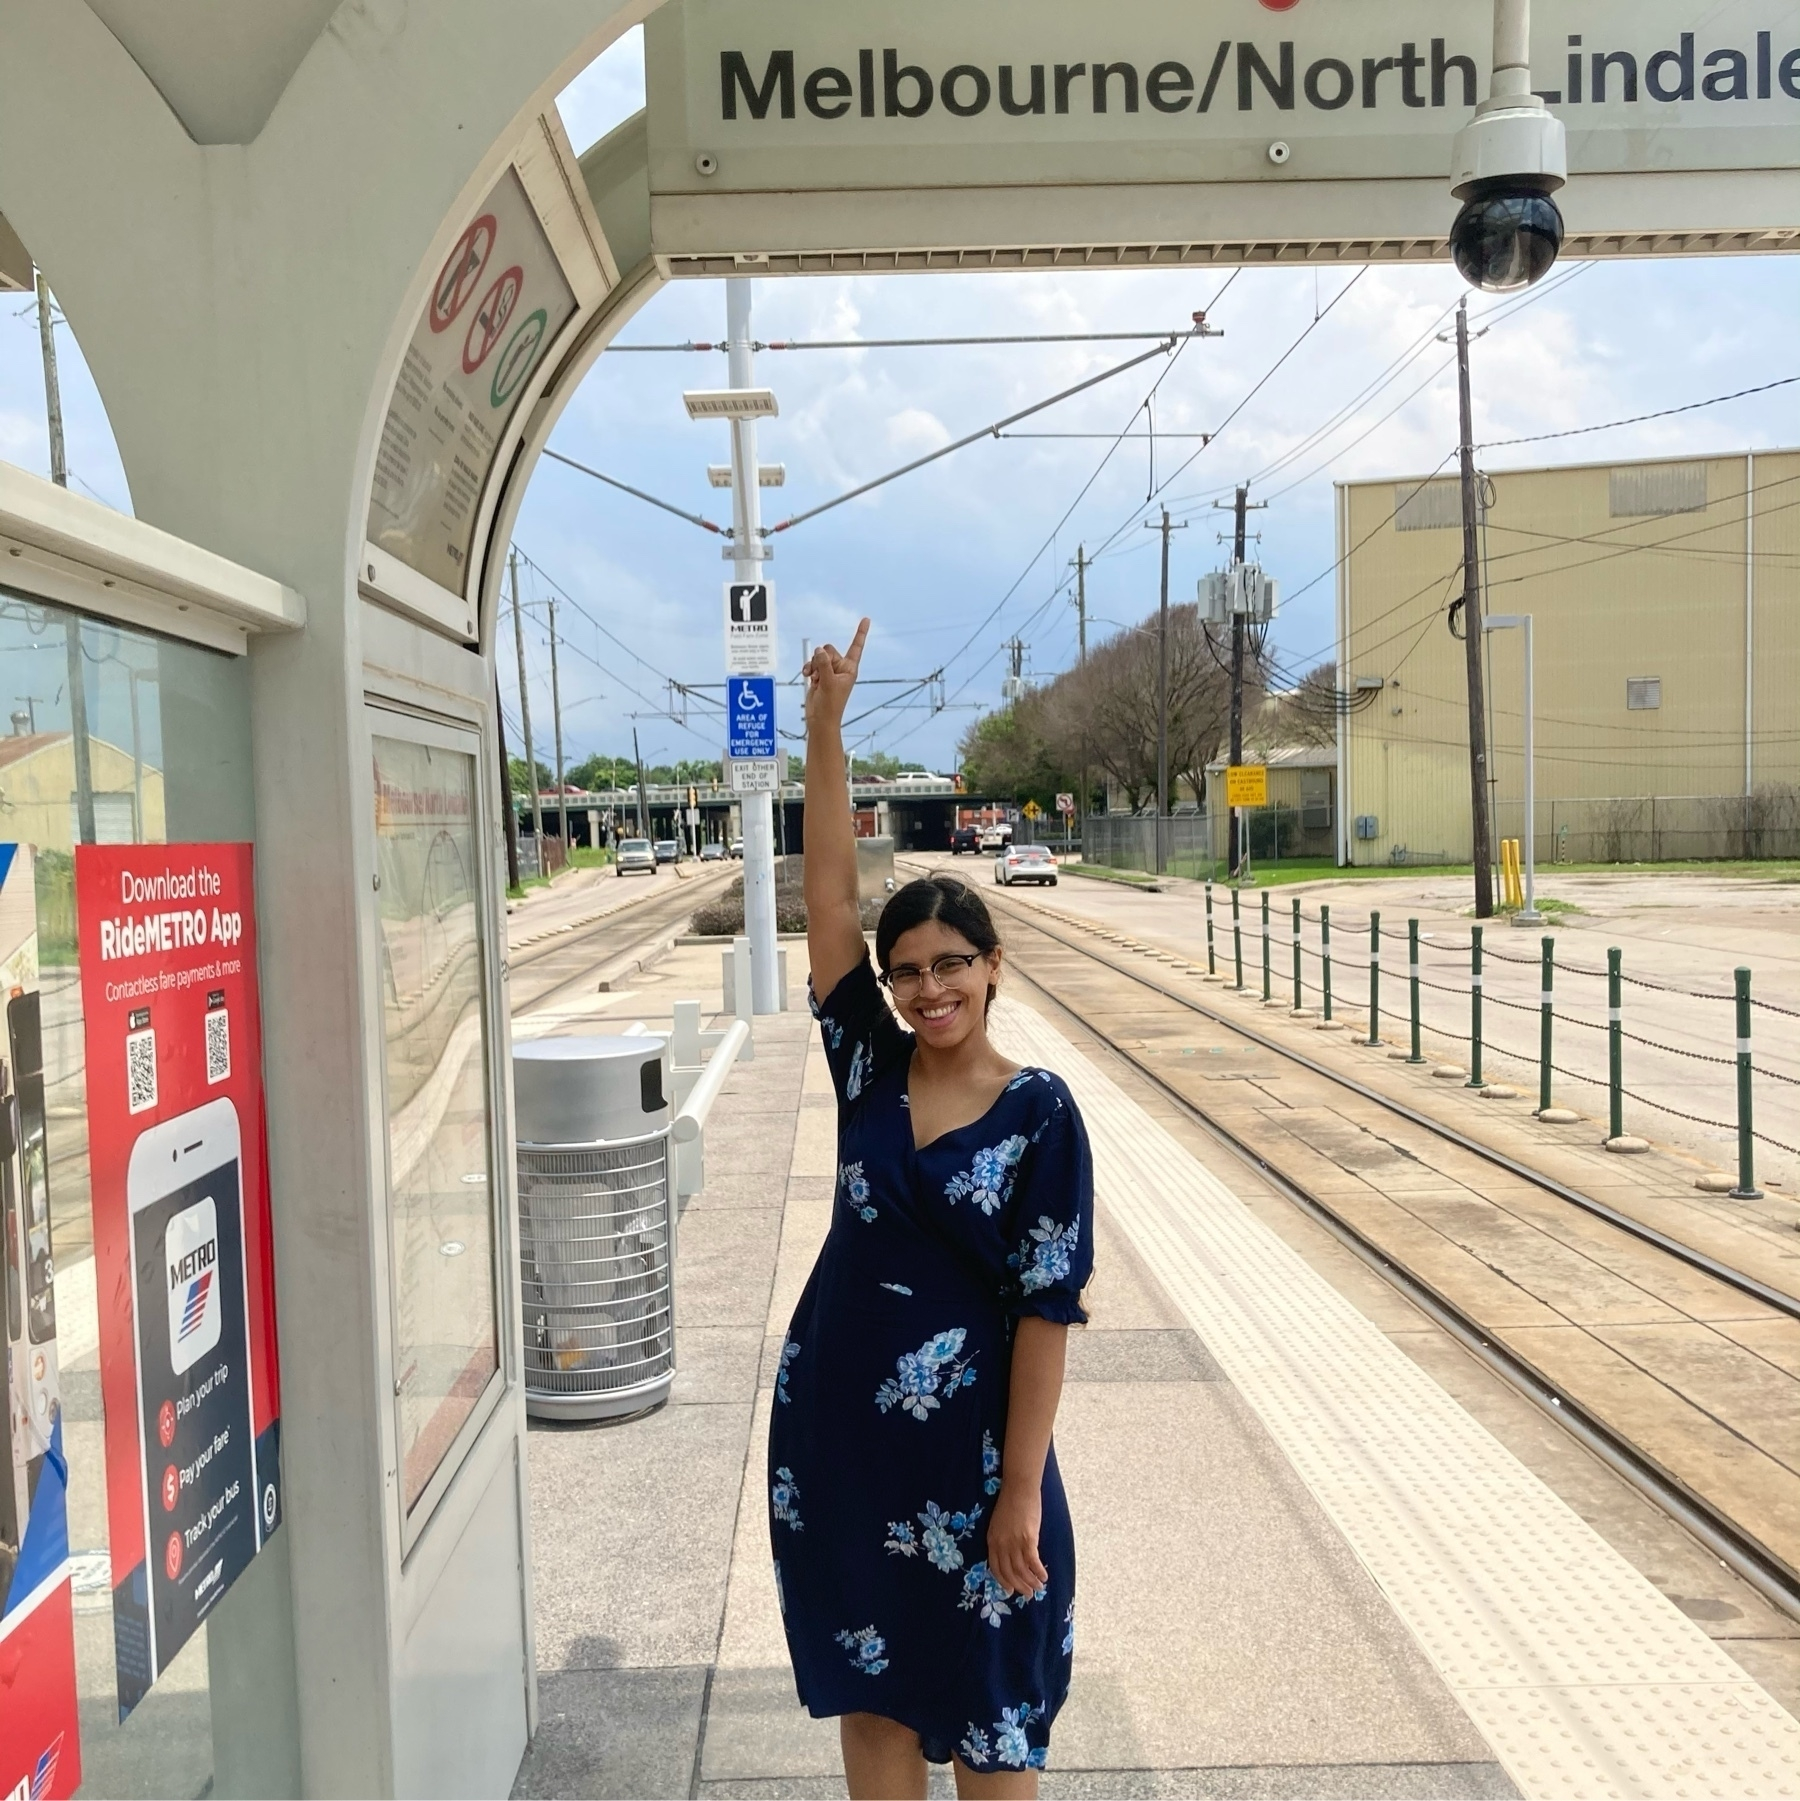 me pointing to a stop that says Melbourne